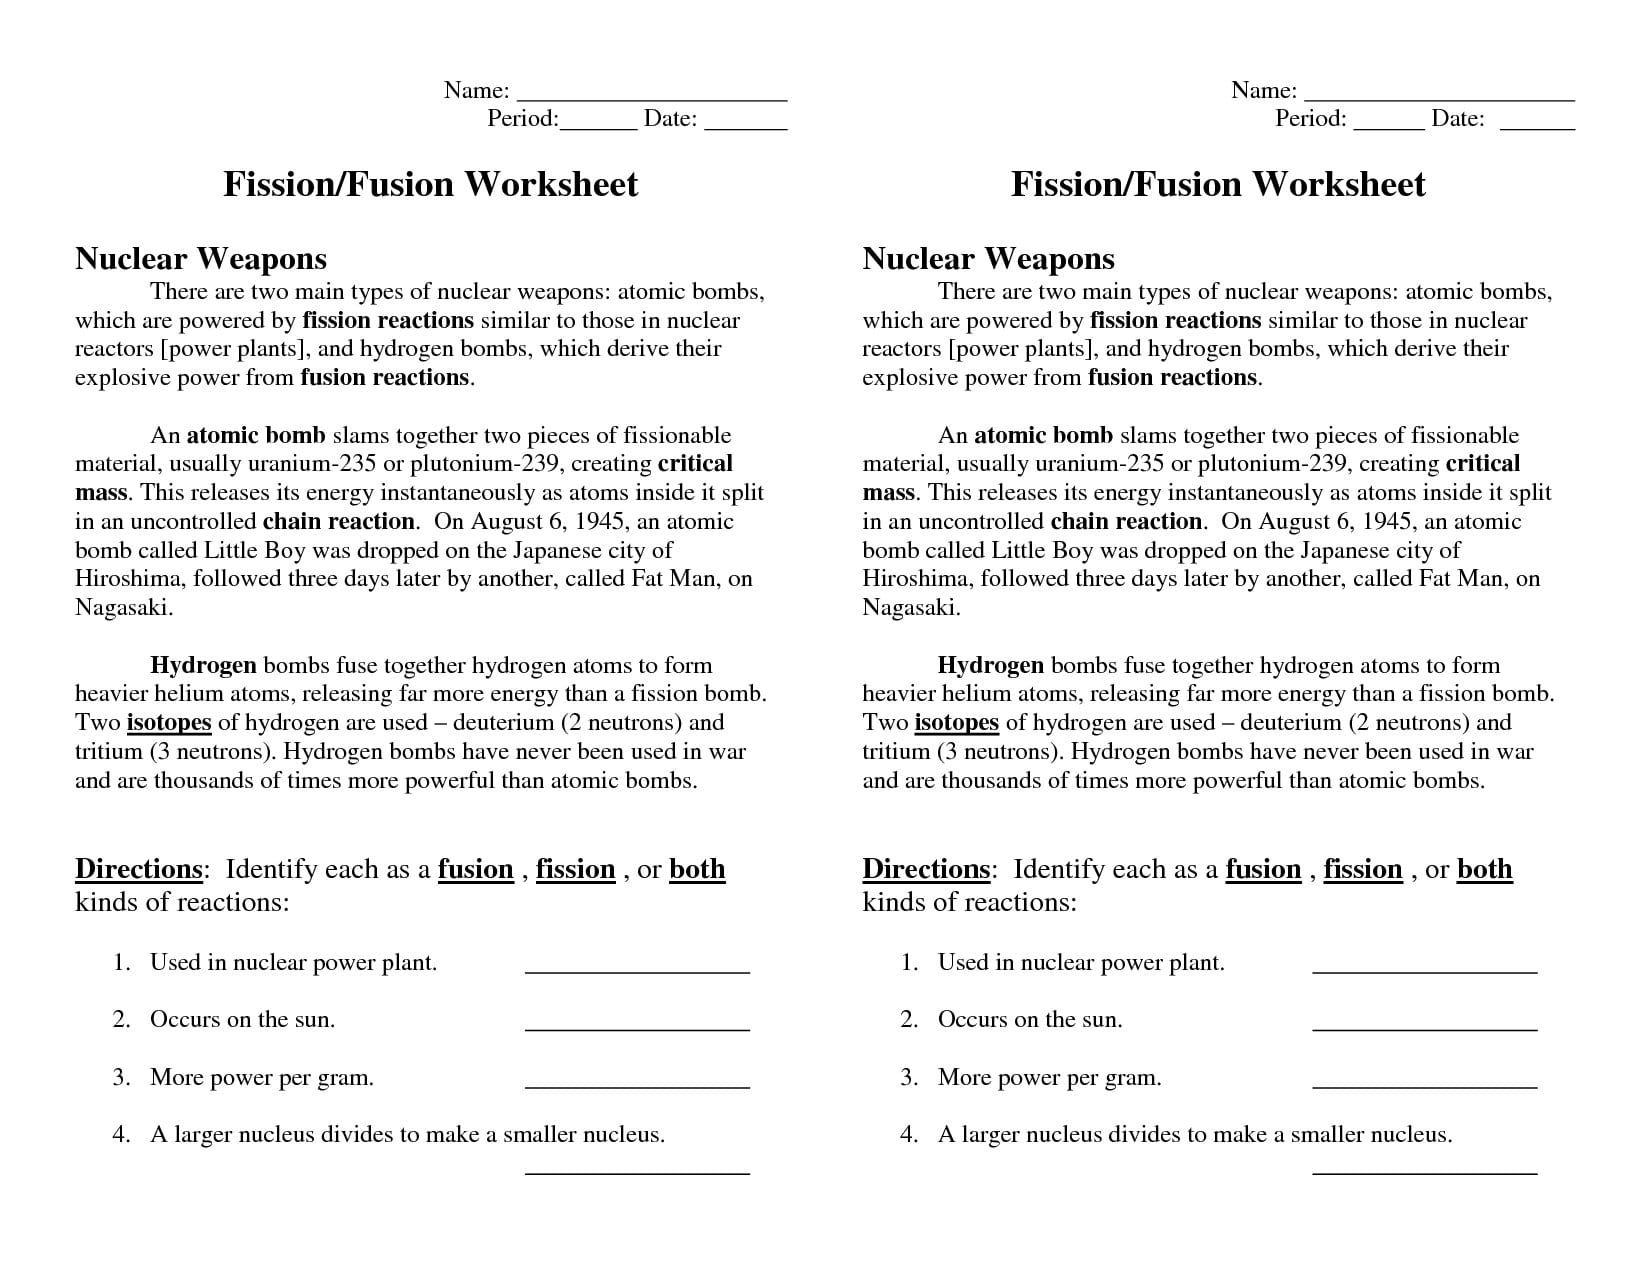 Nuclear Fission And Fusion Worksheet Answers  Soccerphysicsonline And Fission Fusion Worksheet Answers